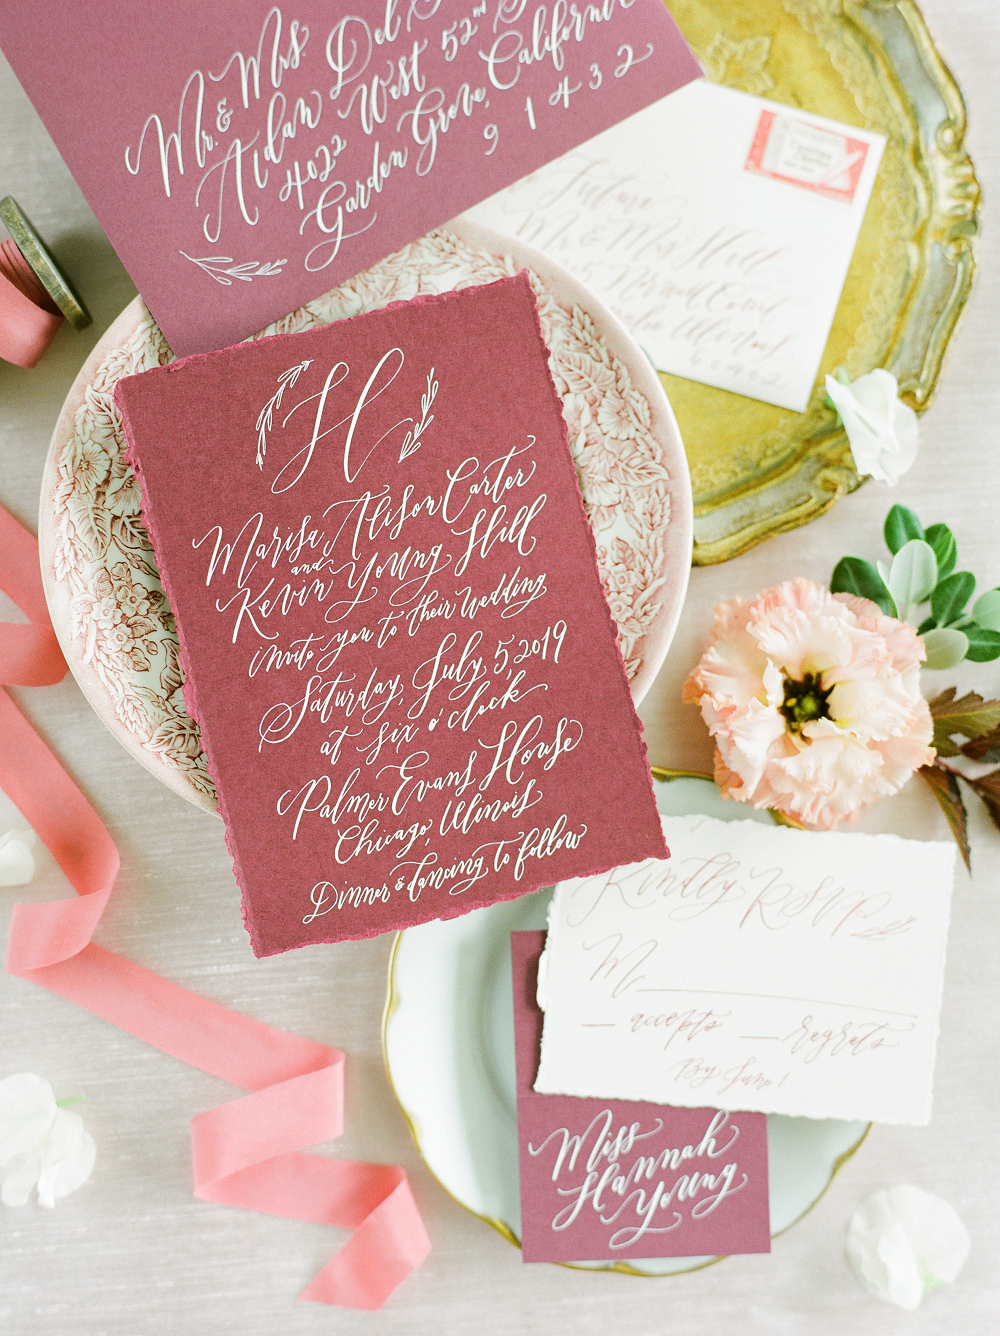 Burgundy and Blush Wedding Inspiration Styled Shoot Stationery and Blush Details